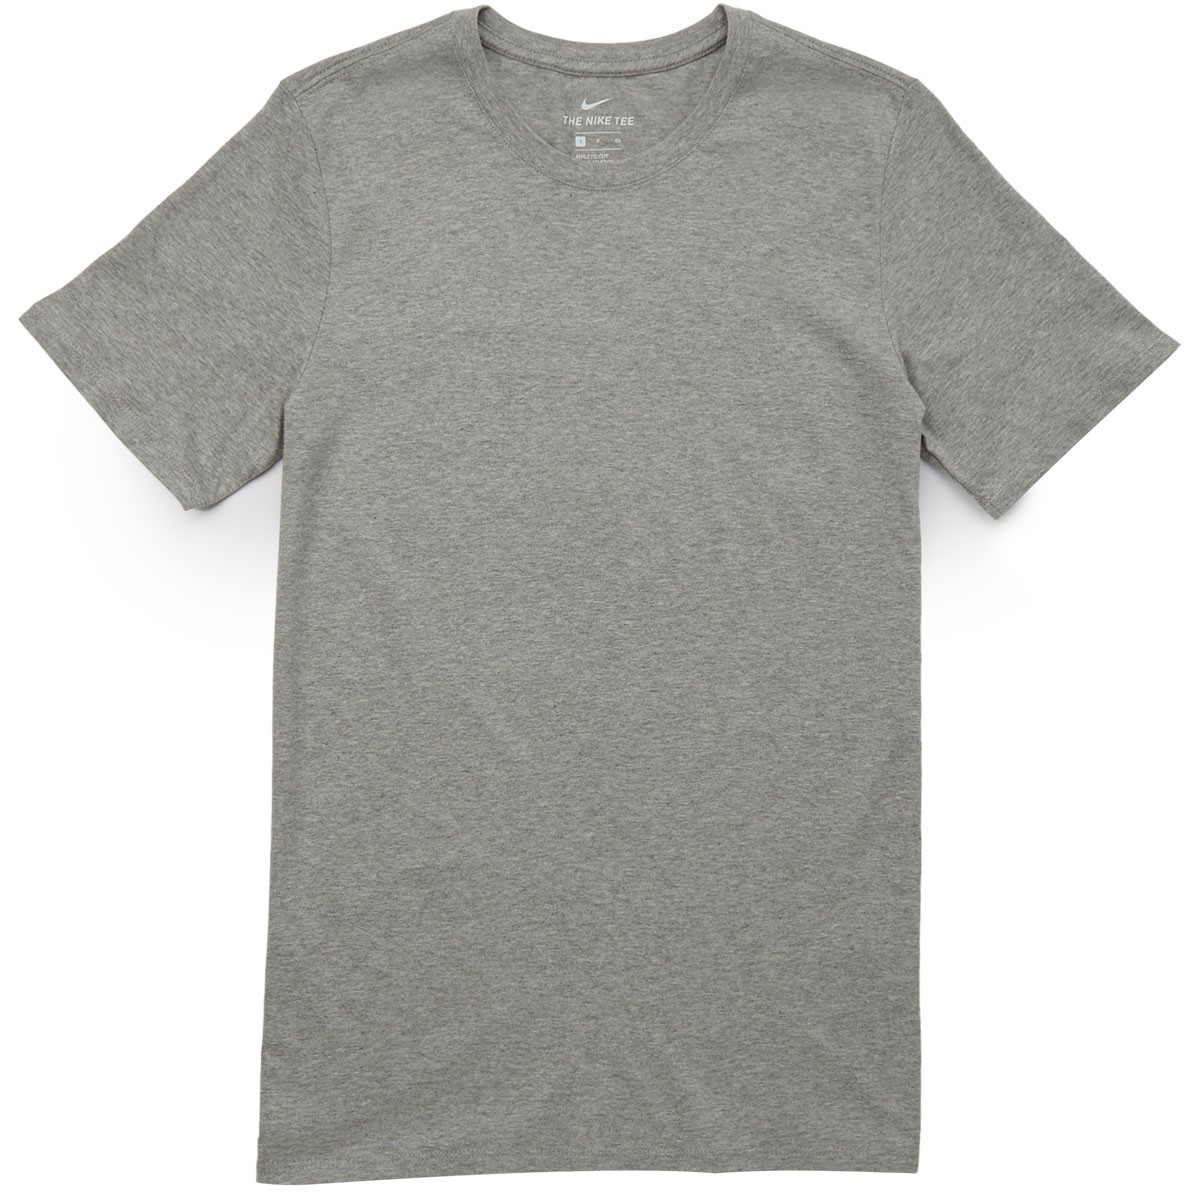 13153ec4 Nike SB Short Sleeve T-Shirt - Dark Grey Heather